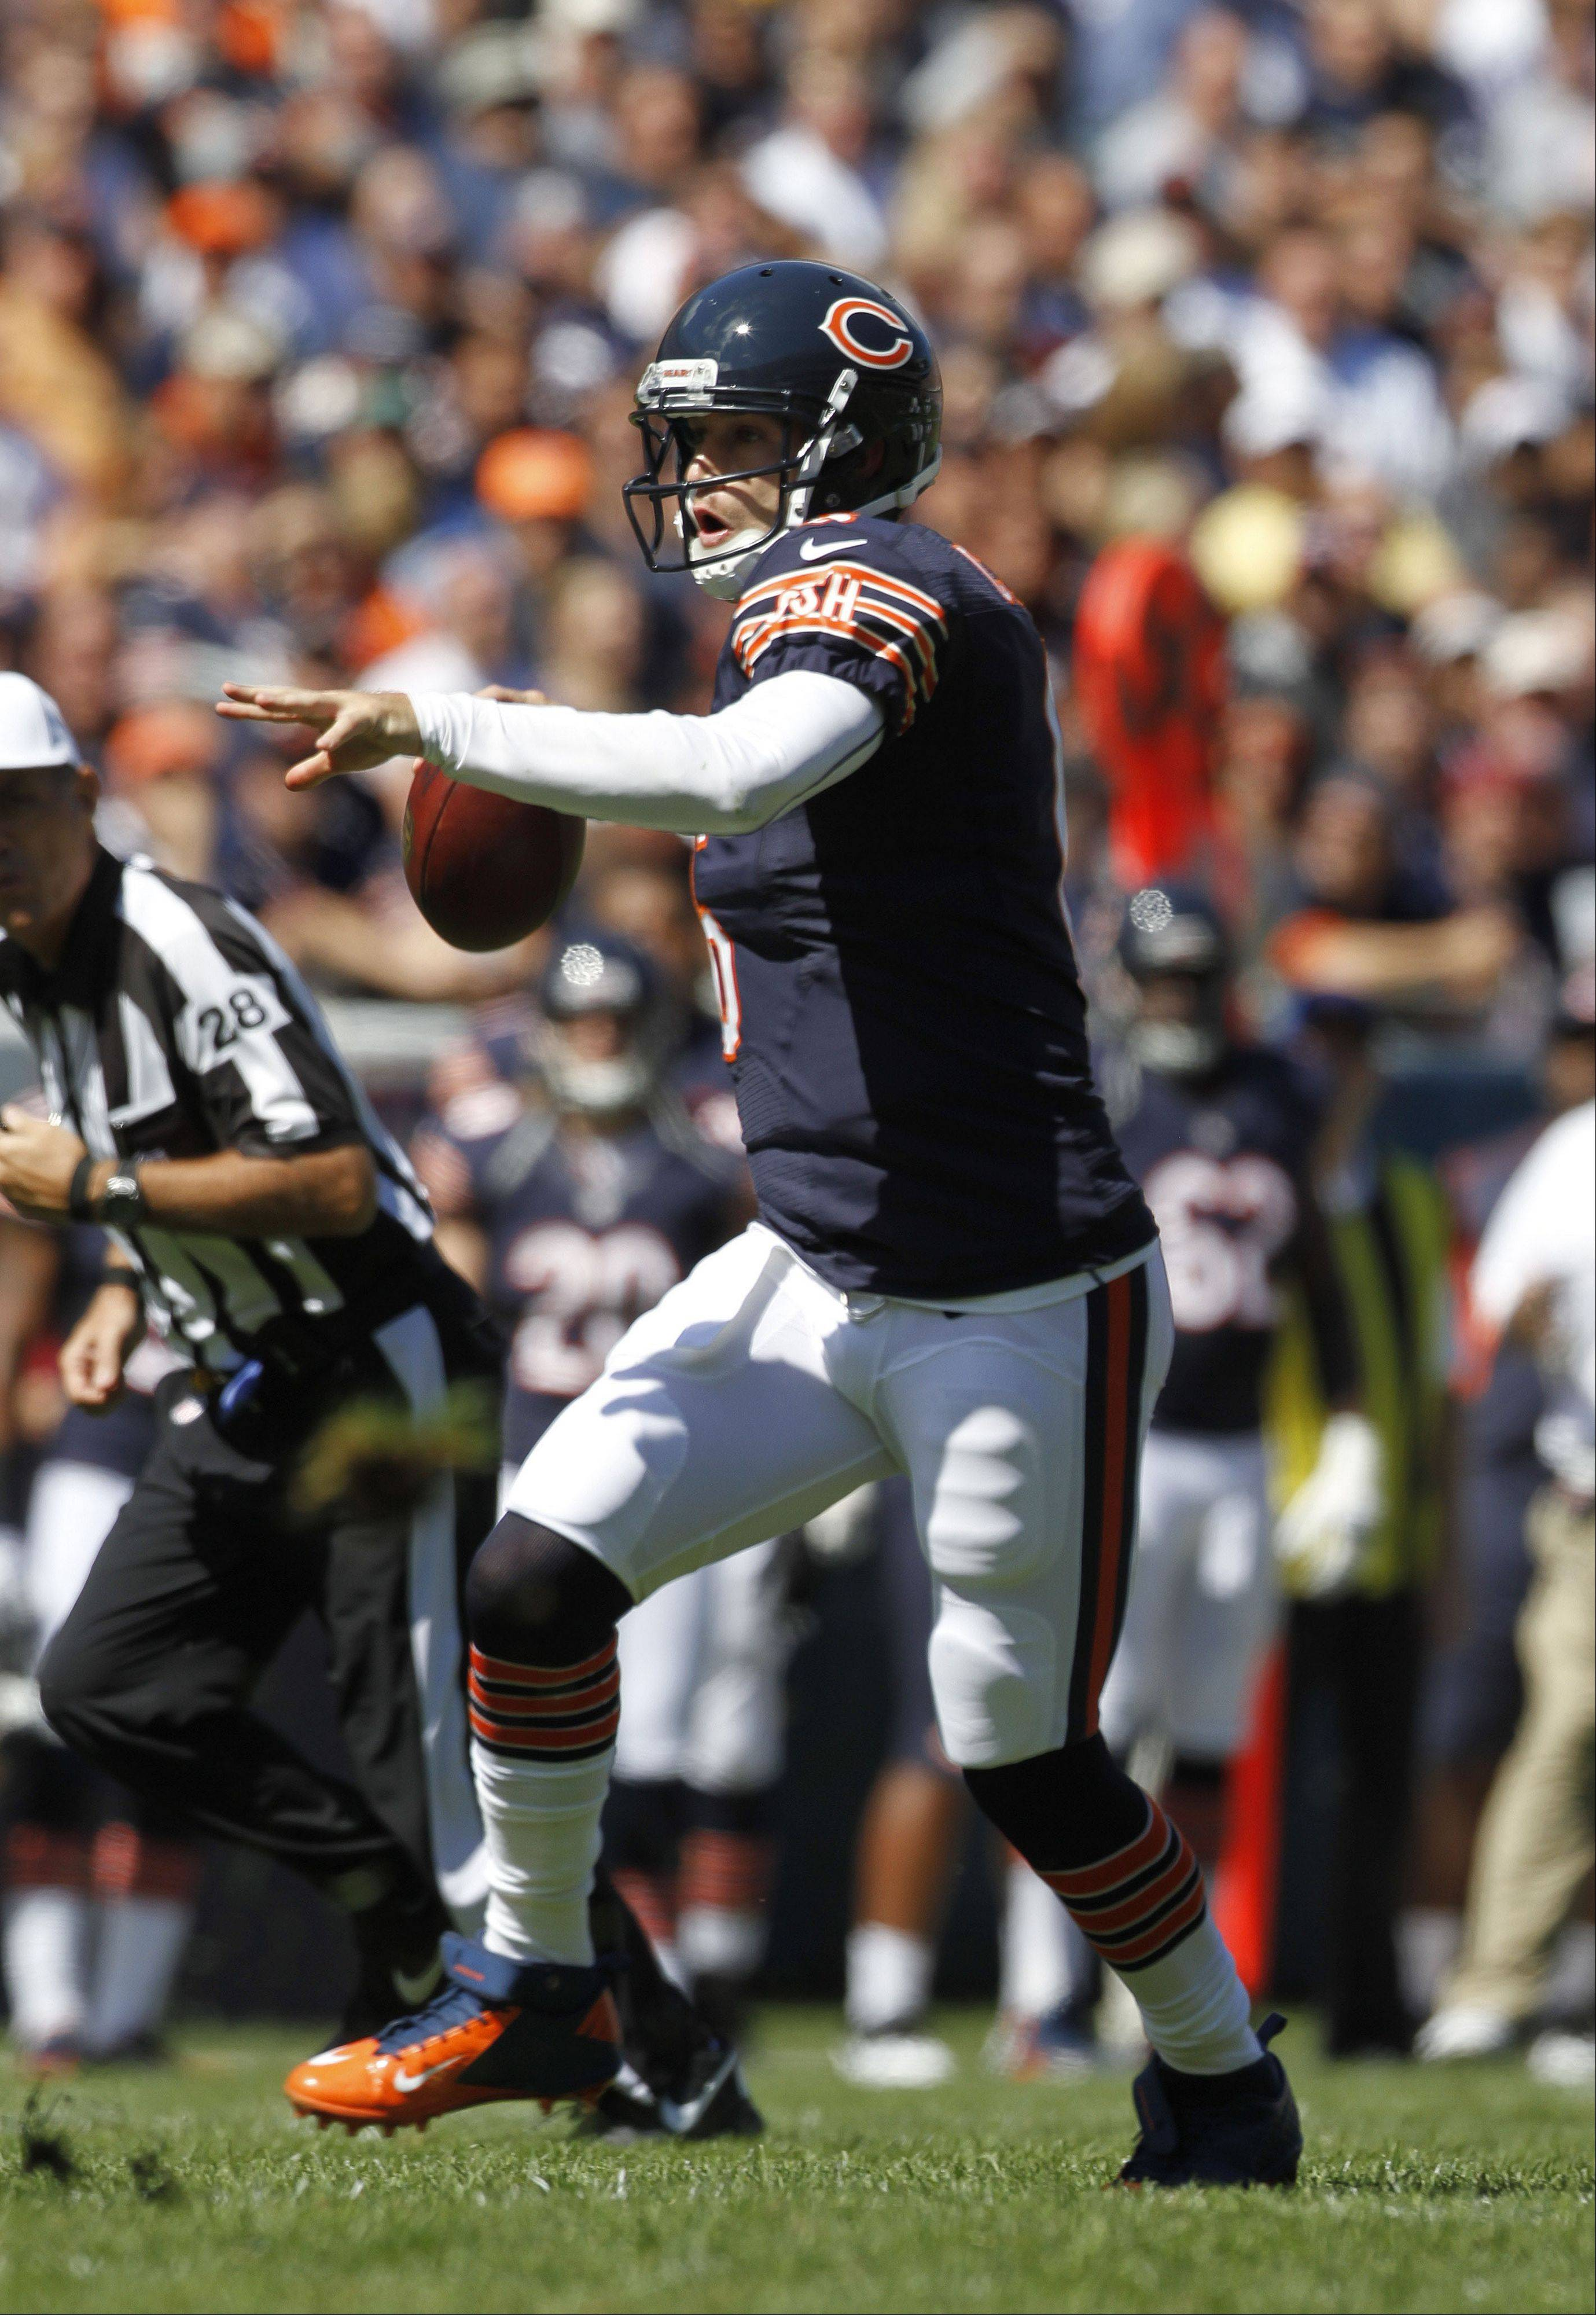 As advertised, Bears offense carries the day